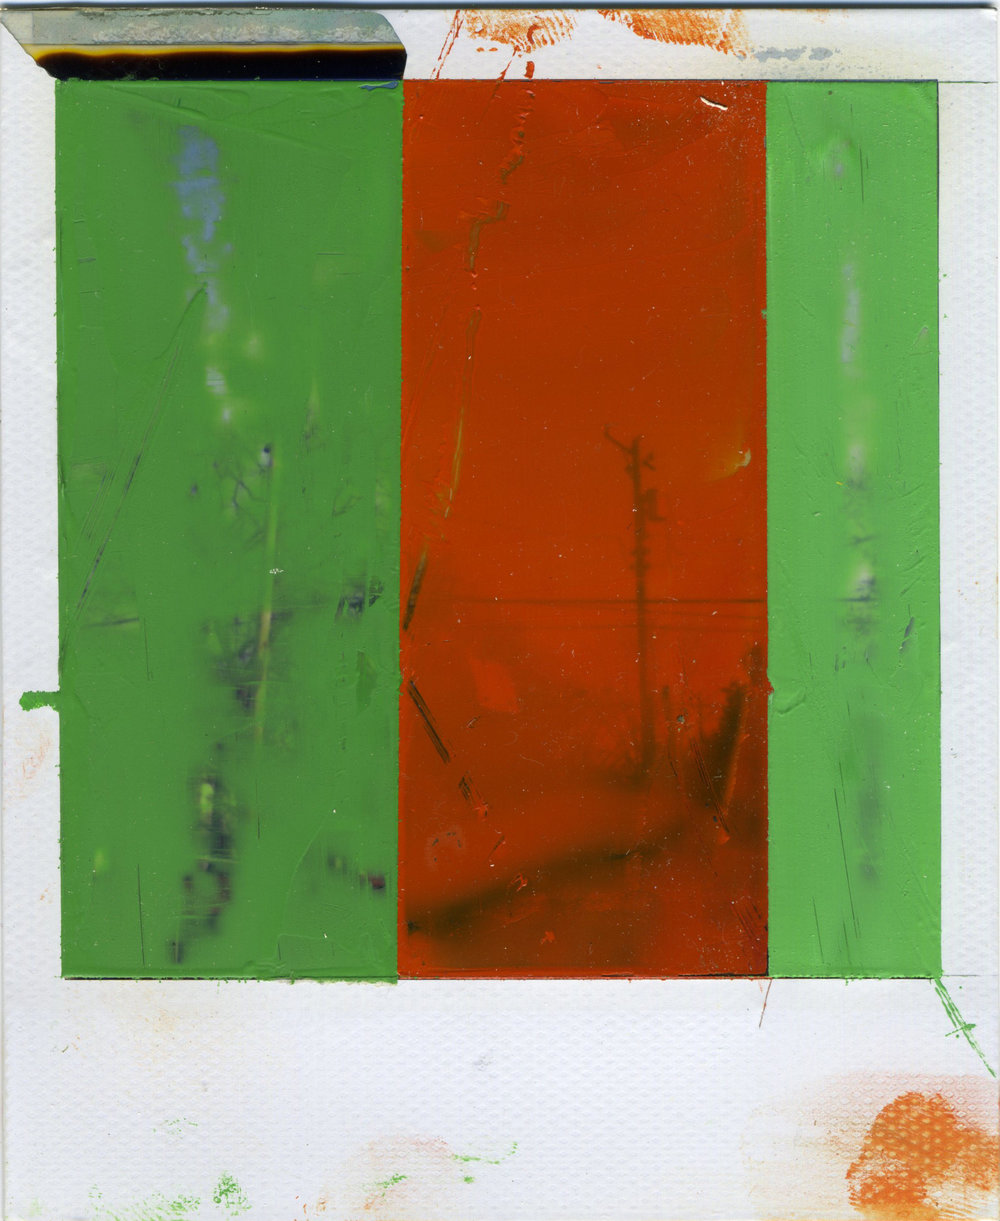 "INTERSECTION (BREAD AND BUTTER)   oil on sx-70 Polaroid | 3.25"" x 4.25"" 